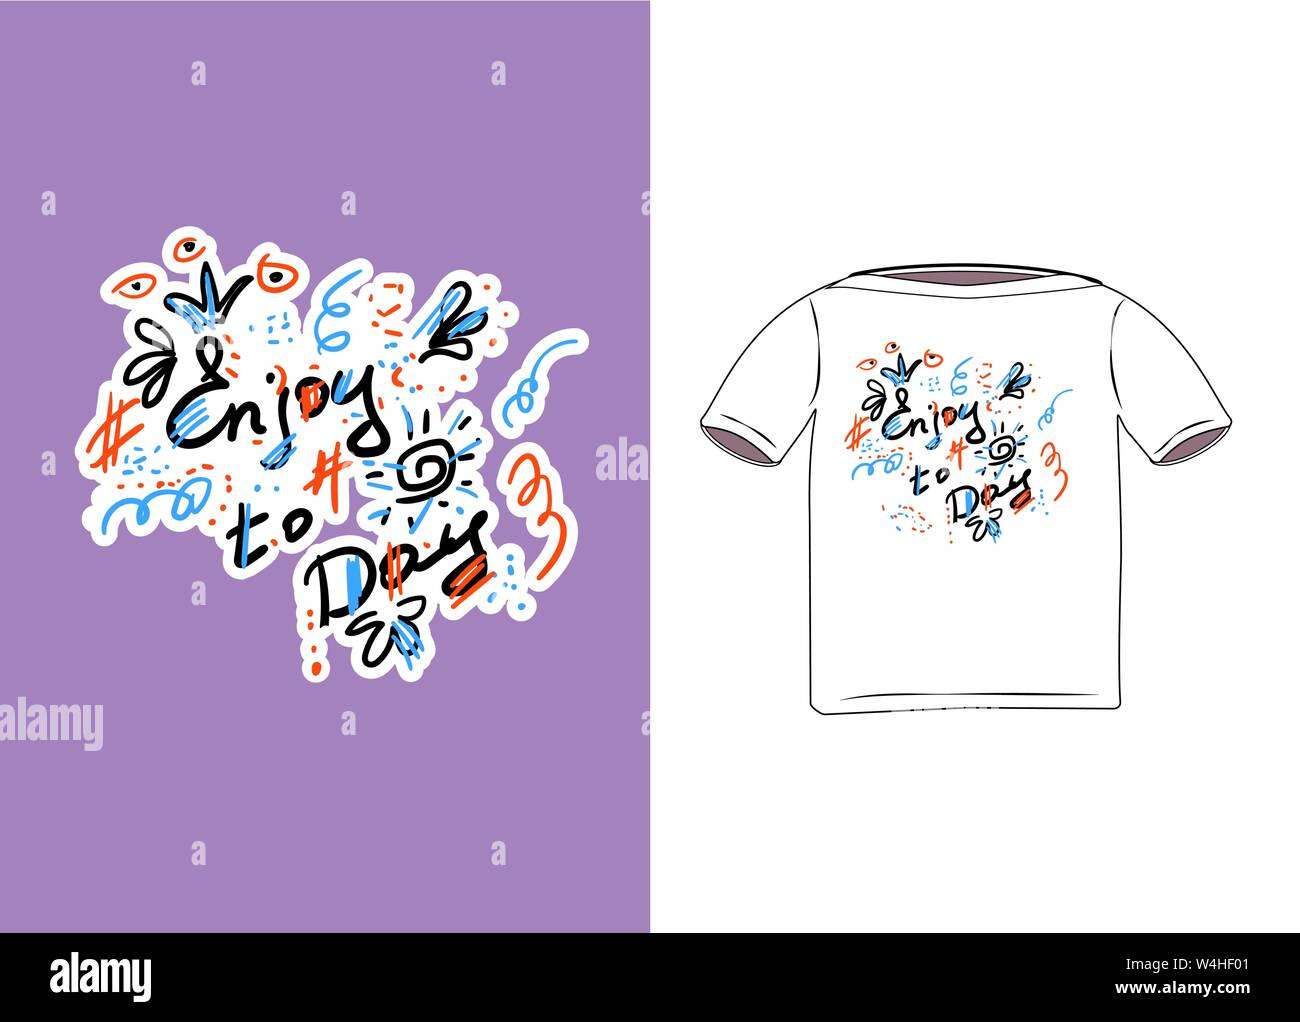 Print on clothes drawn by hand in the style of scribbles. Doodle lettering for printing on t-shirt with colorful flowers, crowns, sun, hashtags and ph Stock Vector